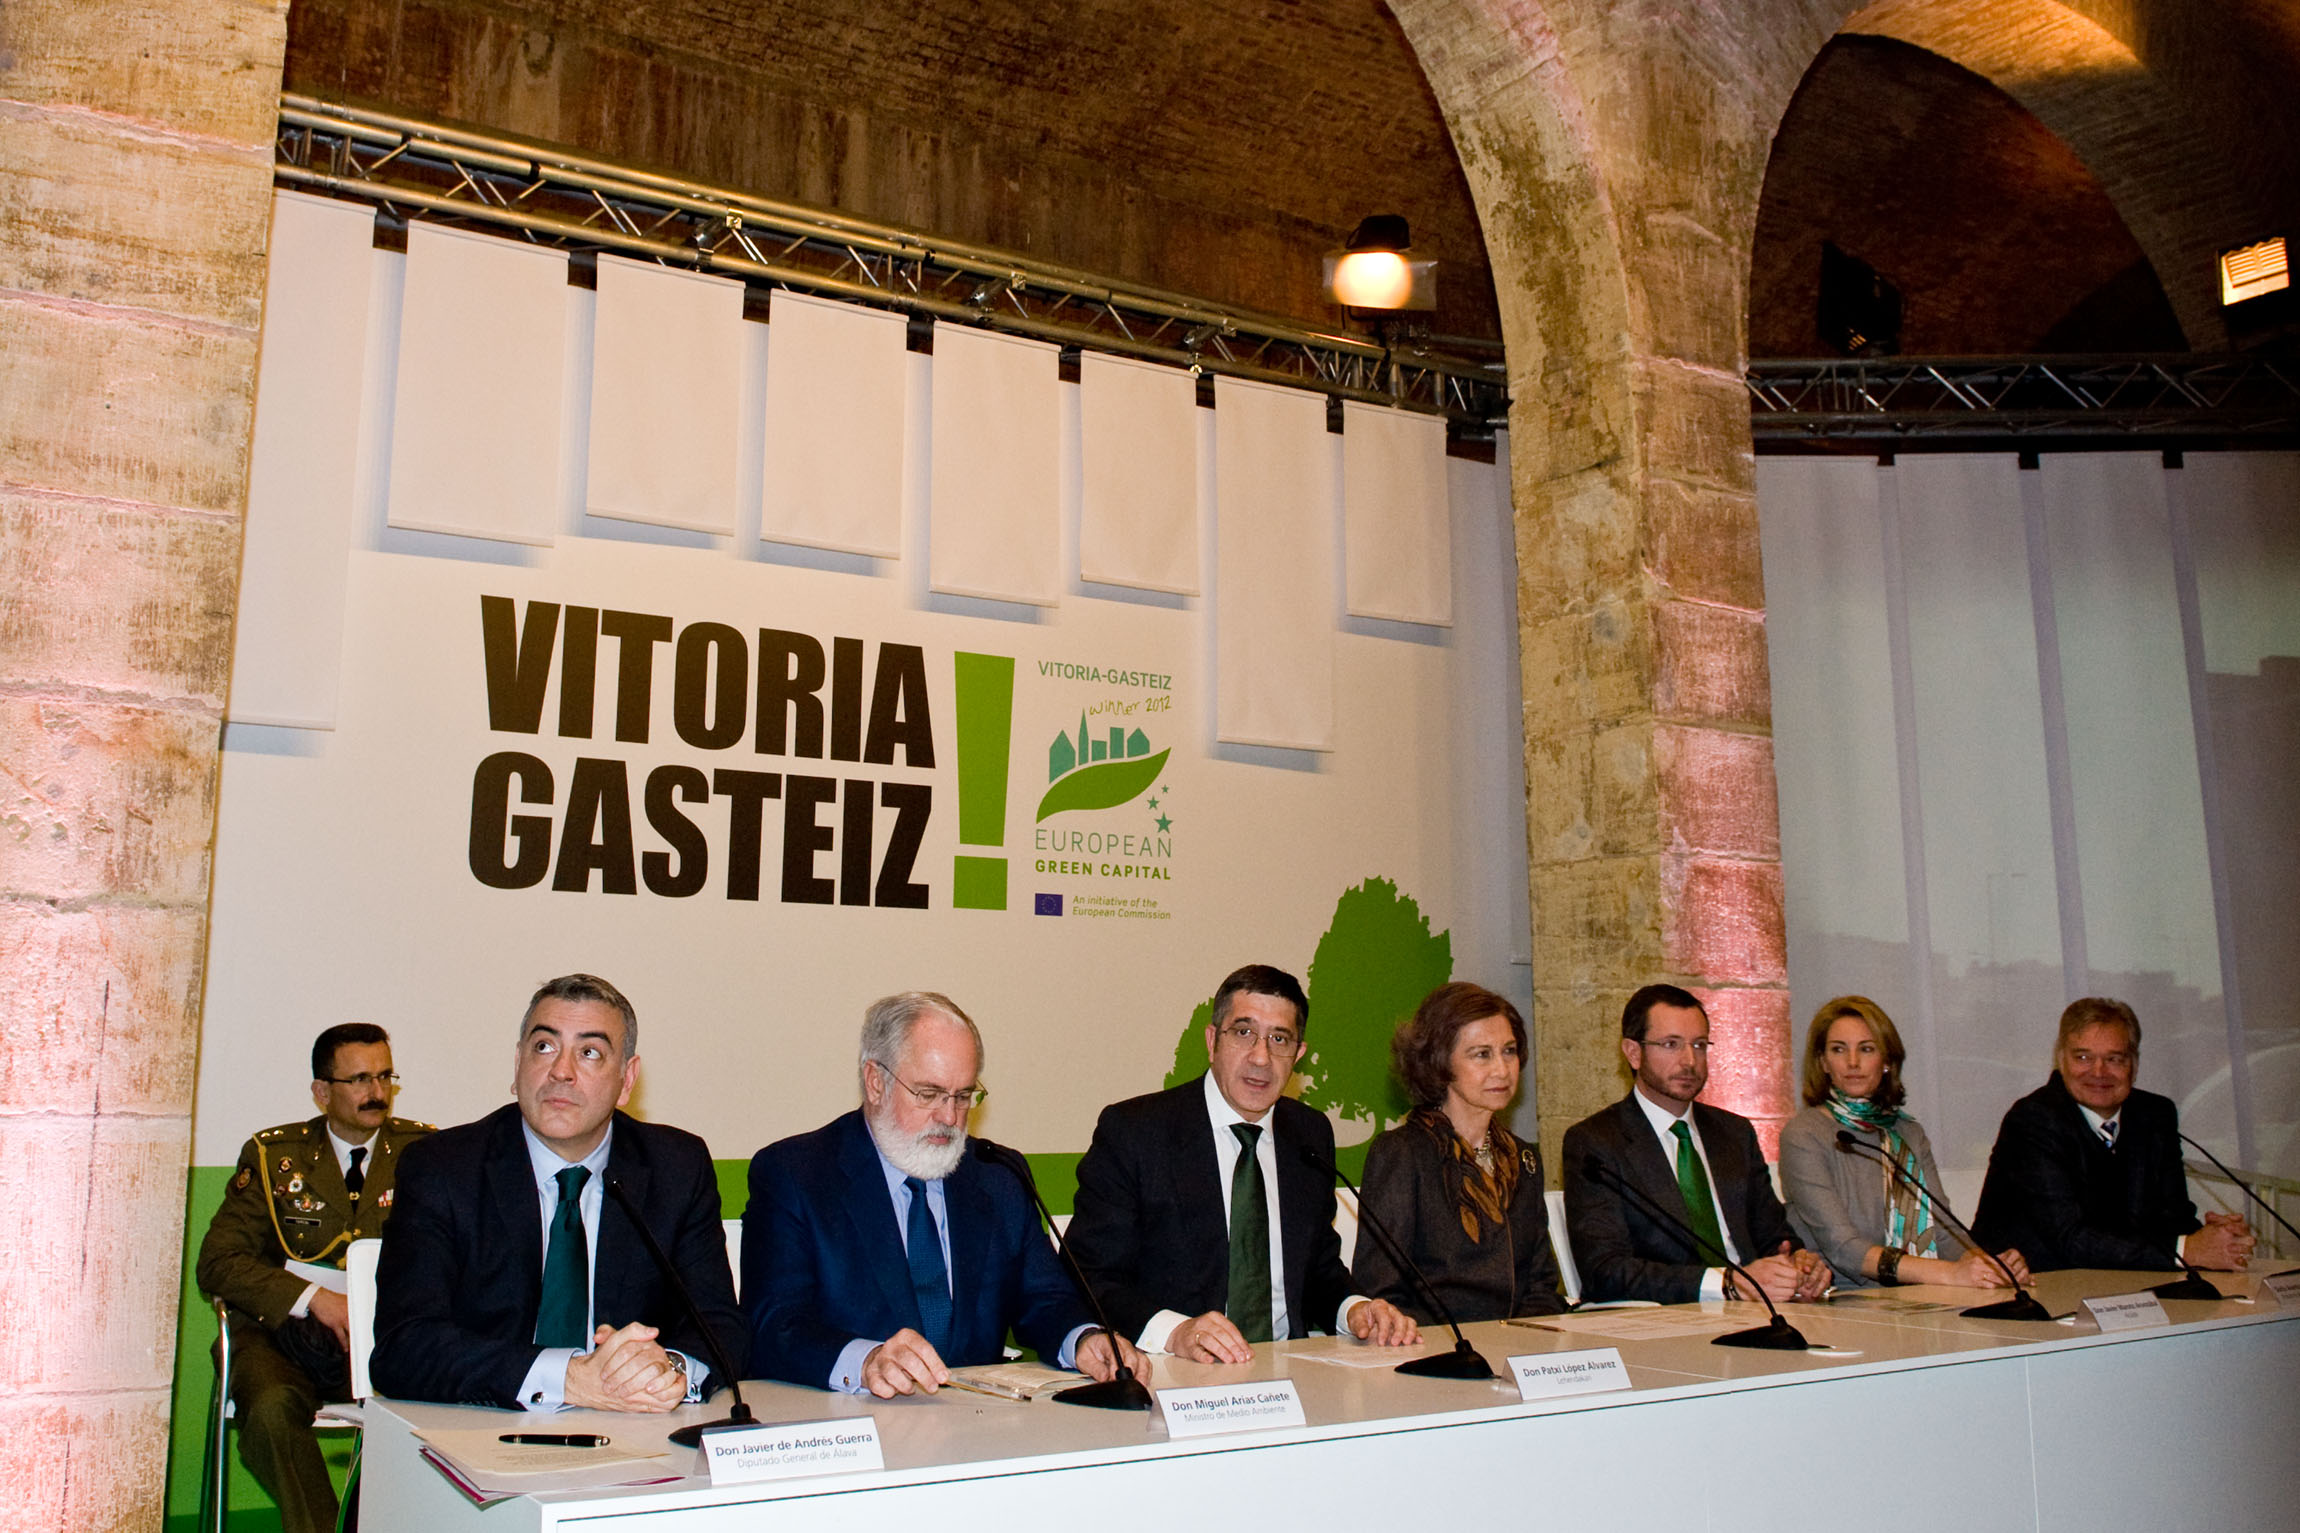 Vitoria-Gasteiz European Green Capital 2012, an